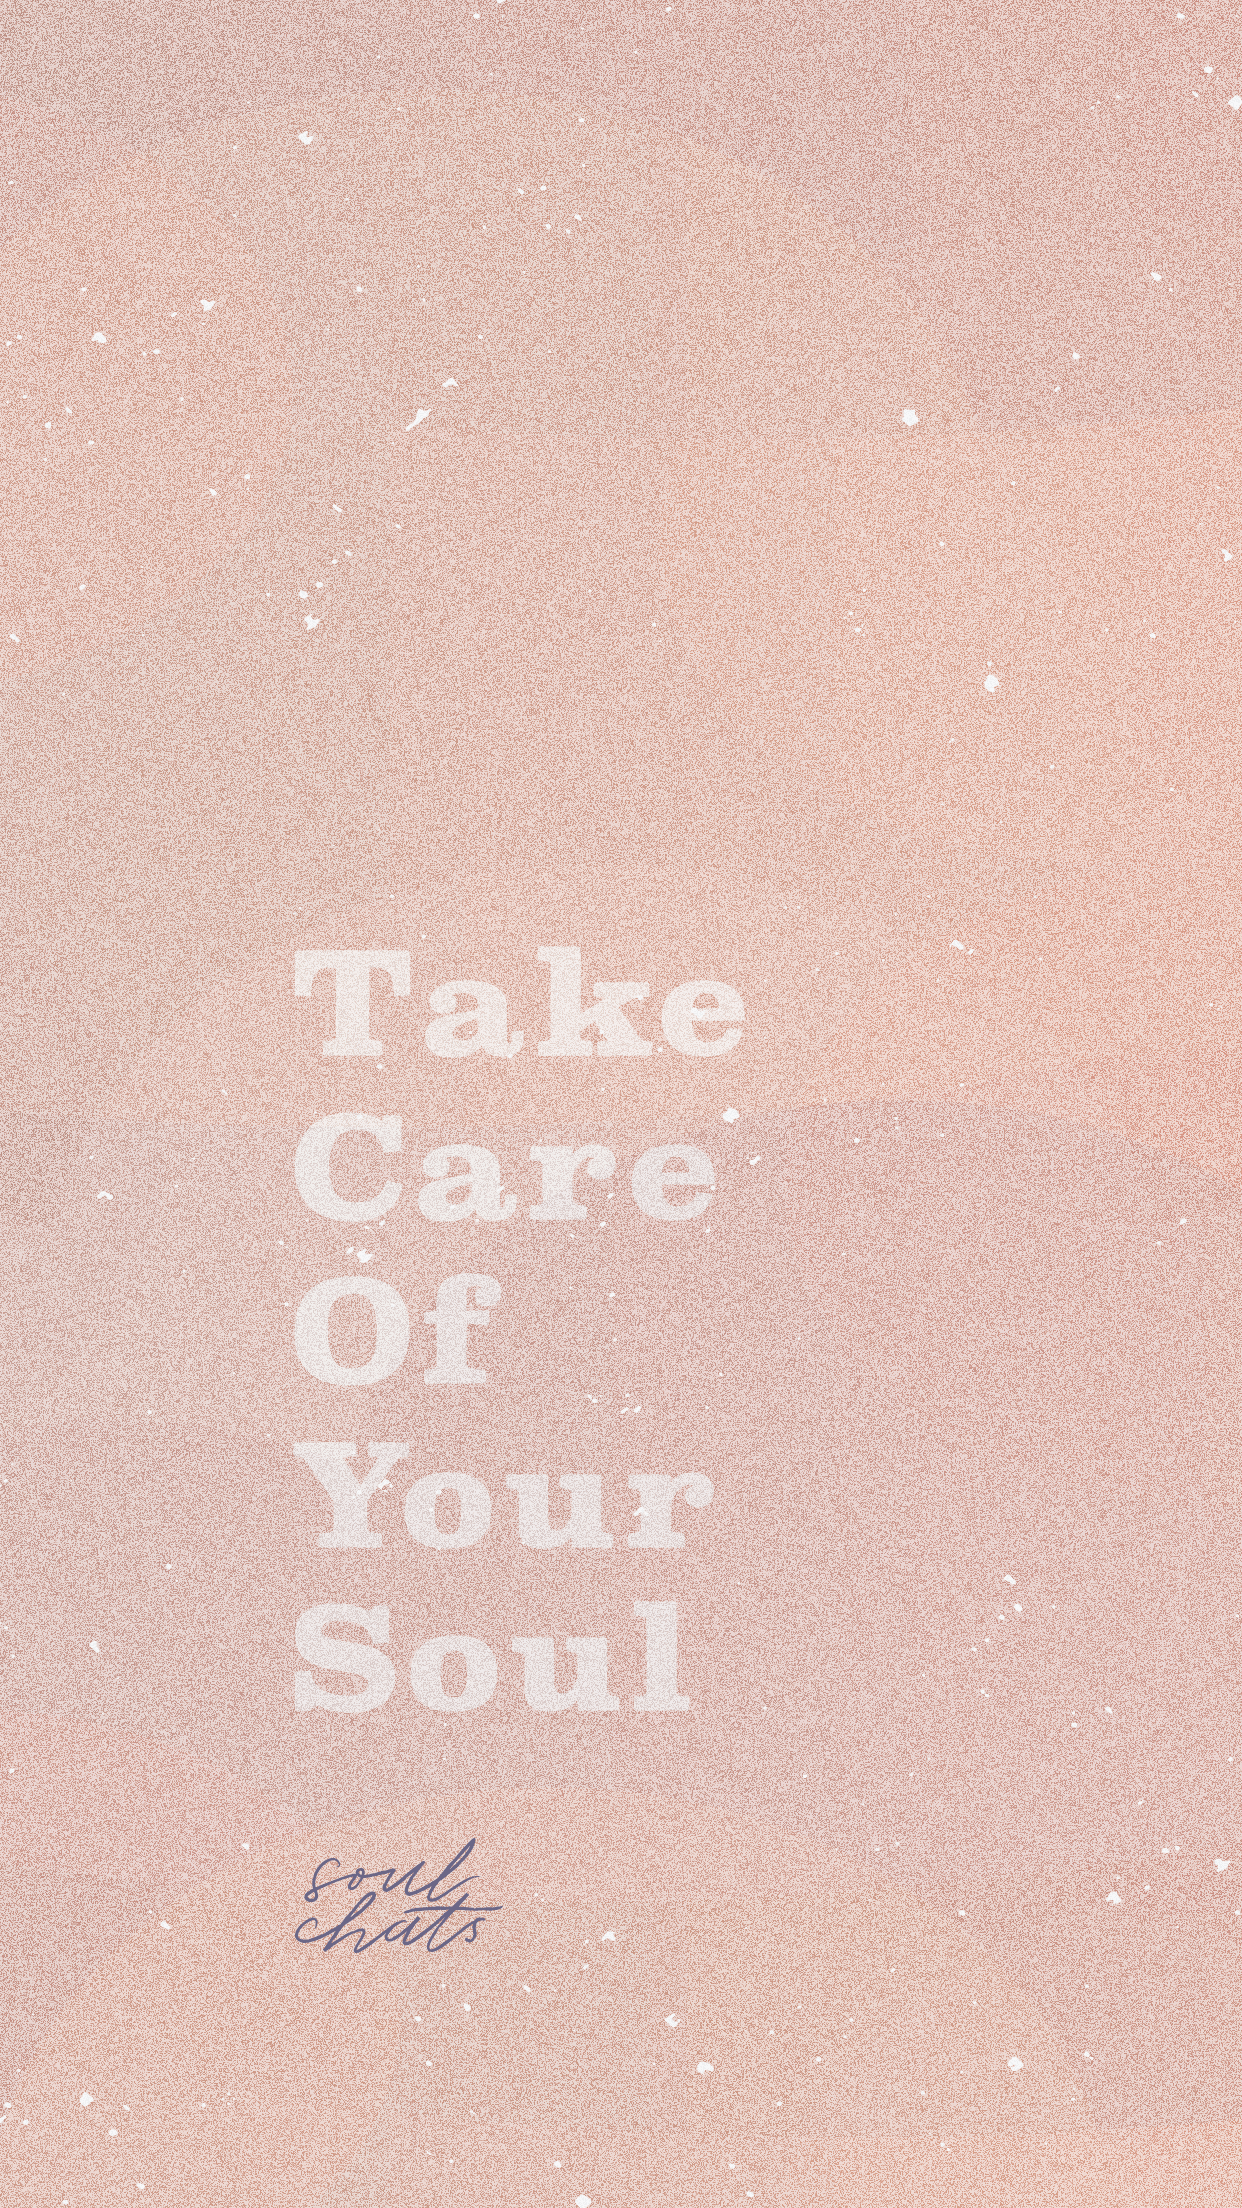 SC-TakeCareofYourSoul-Story